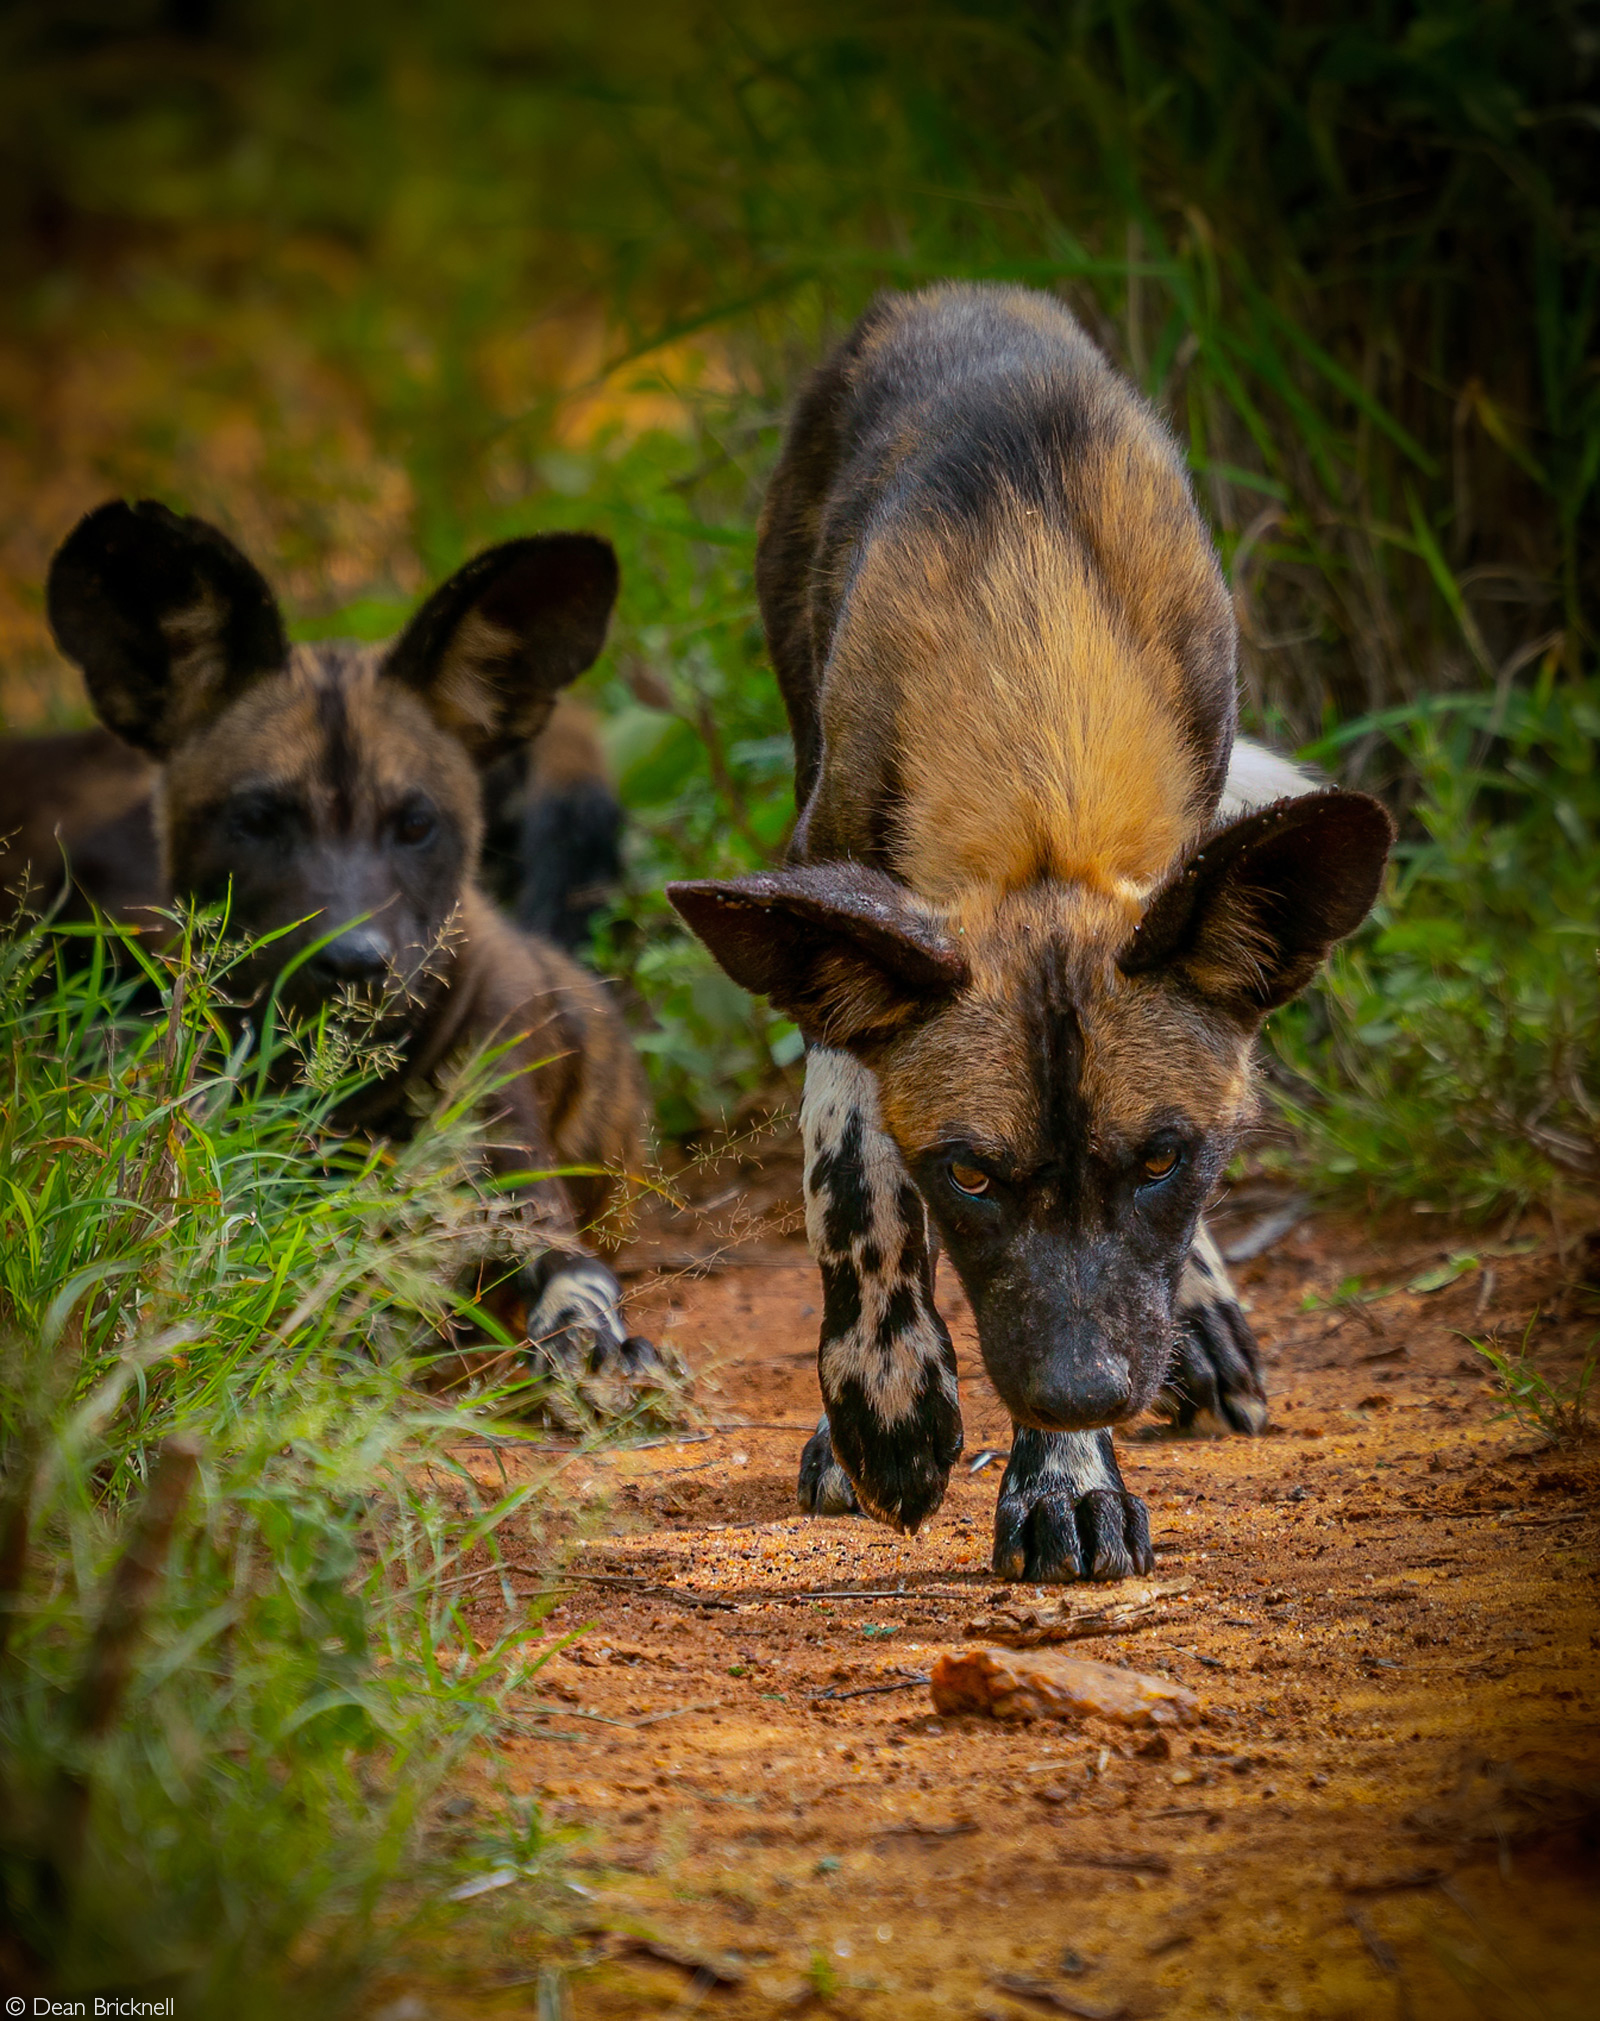 Painted wolves (African wild dogs). Laikipia, Kenya © Dean Bricknell